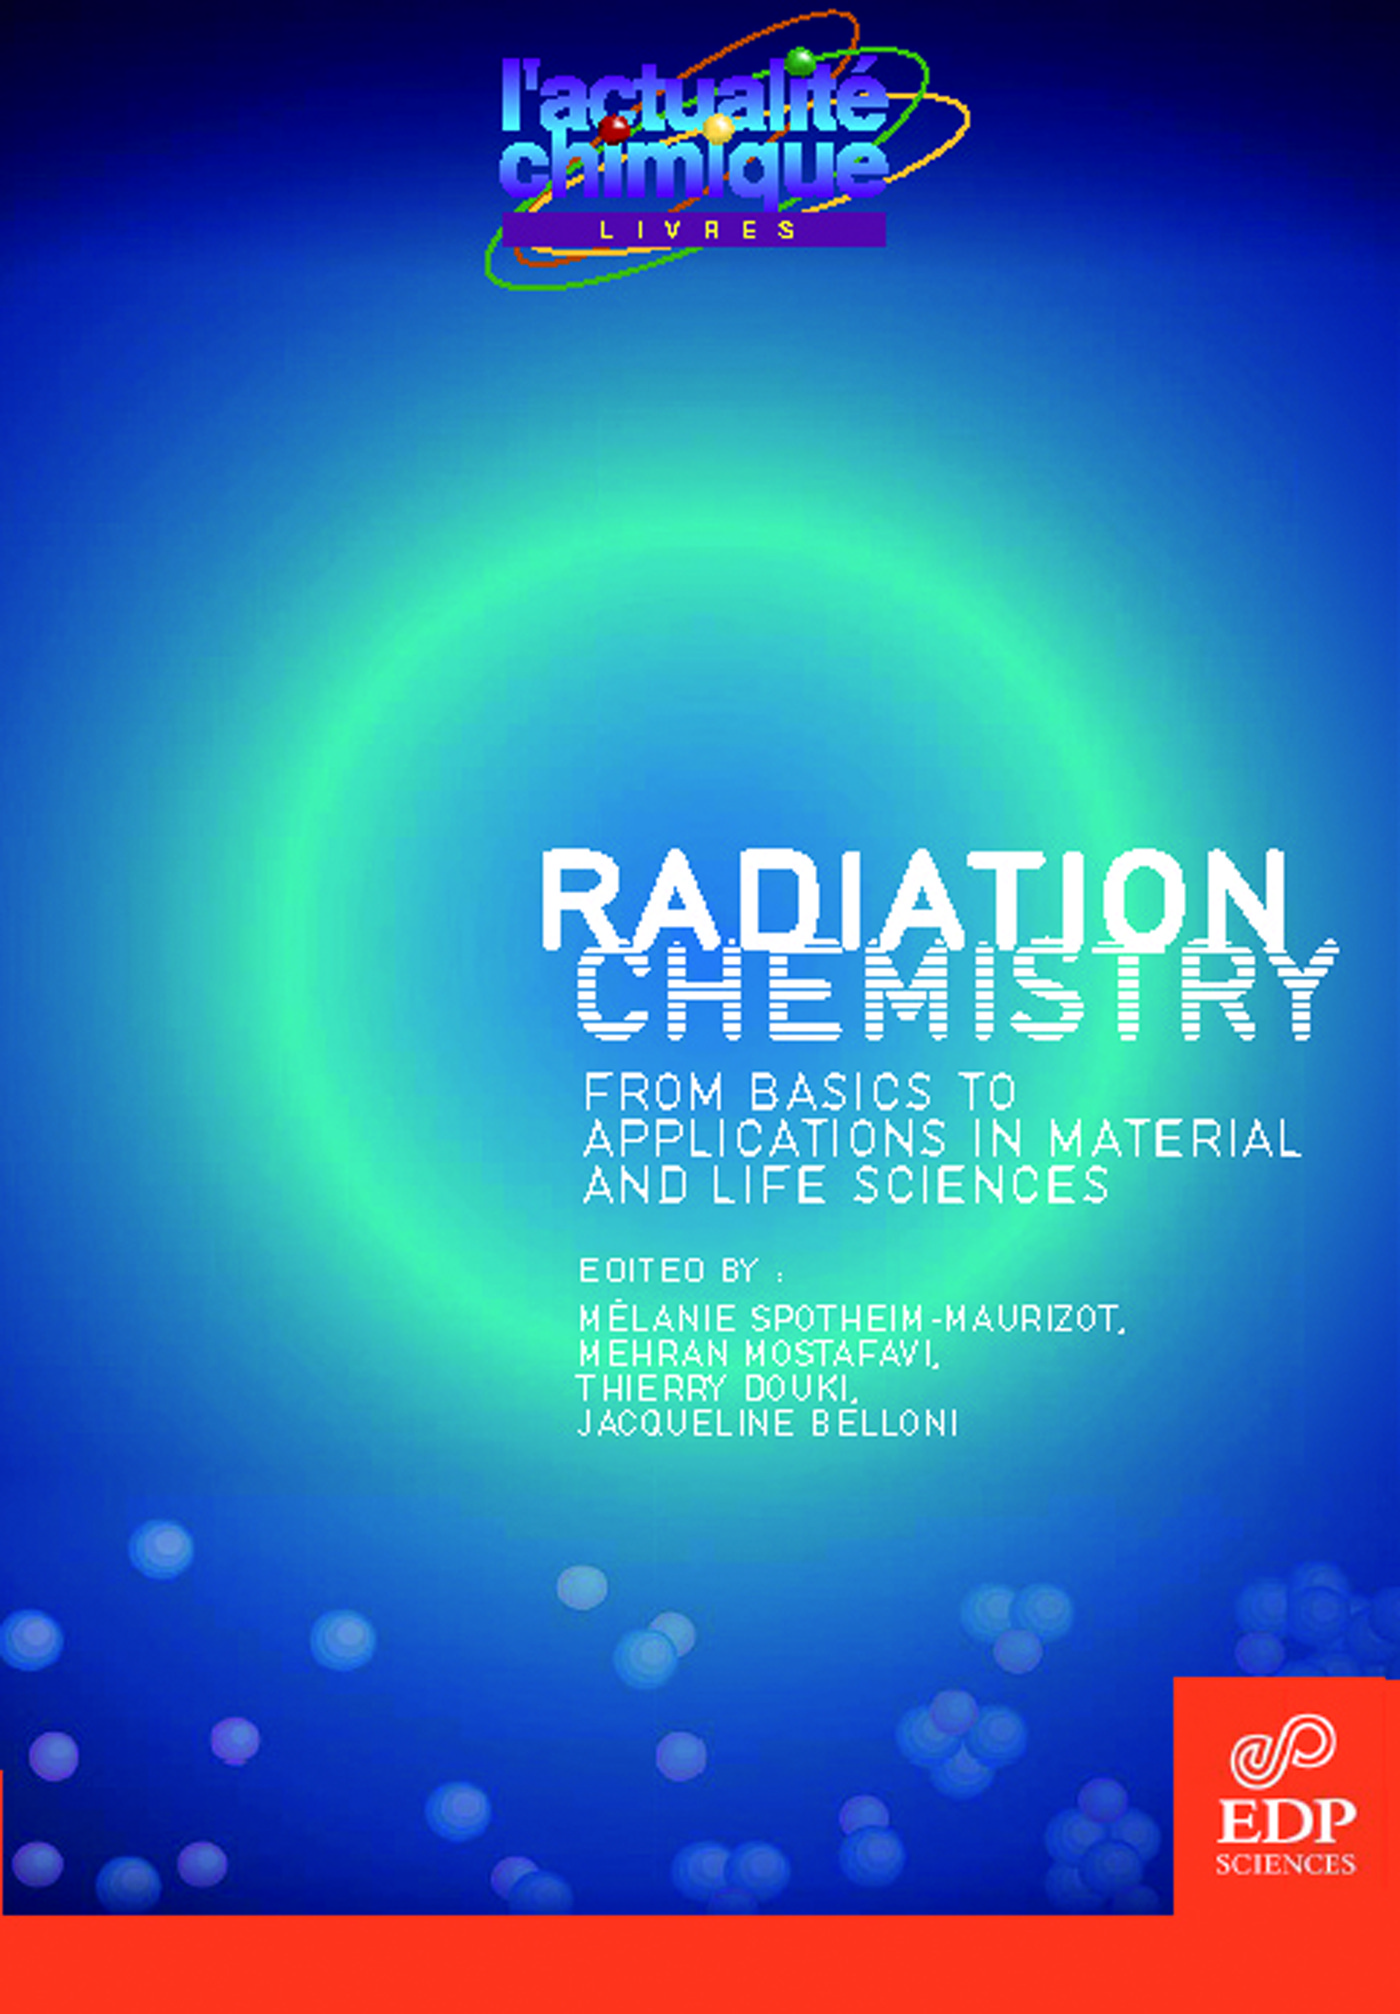 RADIATION CHEMISTRY FROM BASICS TO APPLICATIONS IN MATERIAL AND LIFE SCIENCES